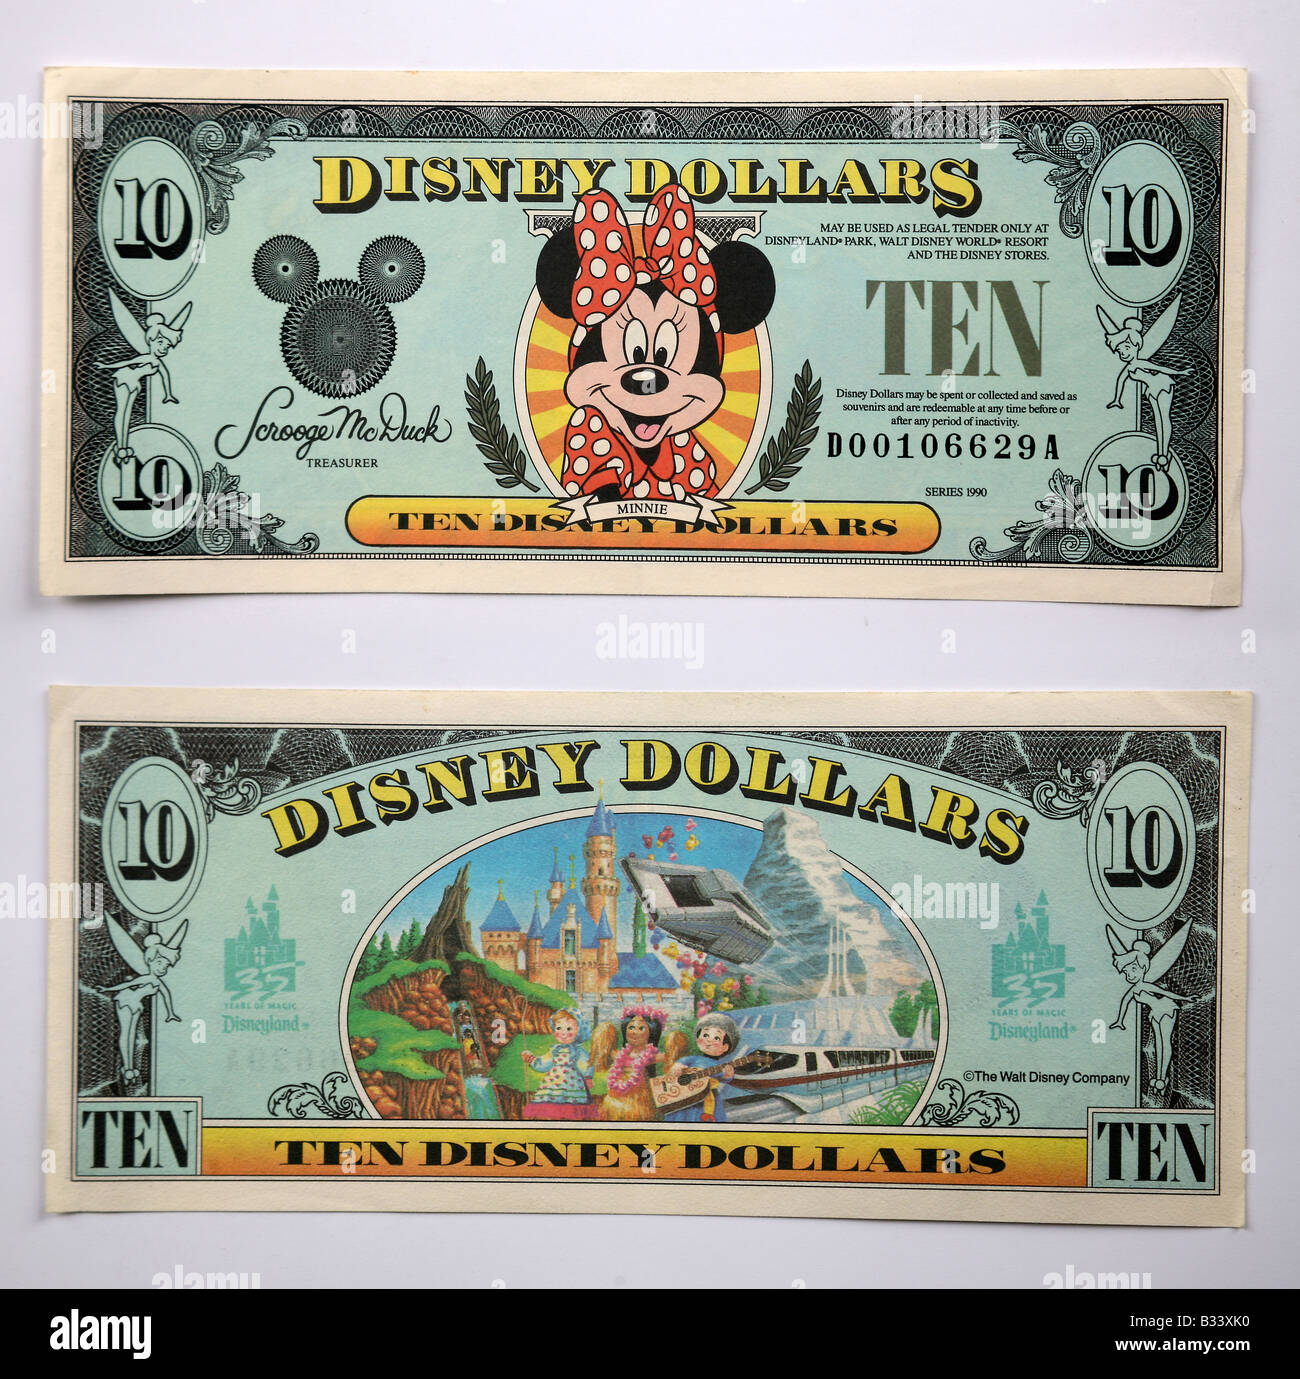 walt disney world thesis statement Transcript of negative effects on disney role models for young best child-hood memories are made in walt disney world and thesis statement we believe.